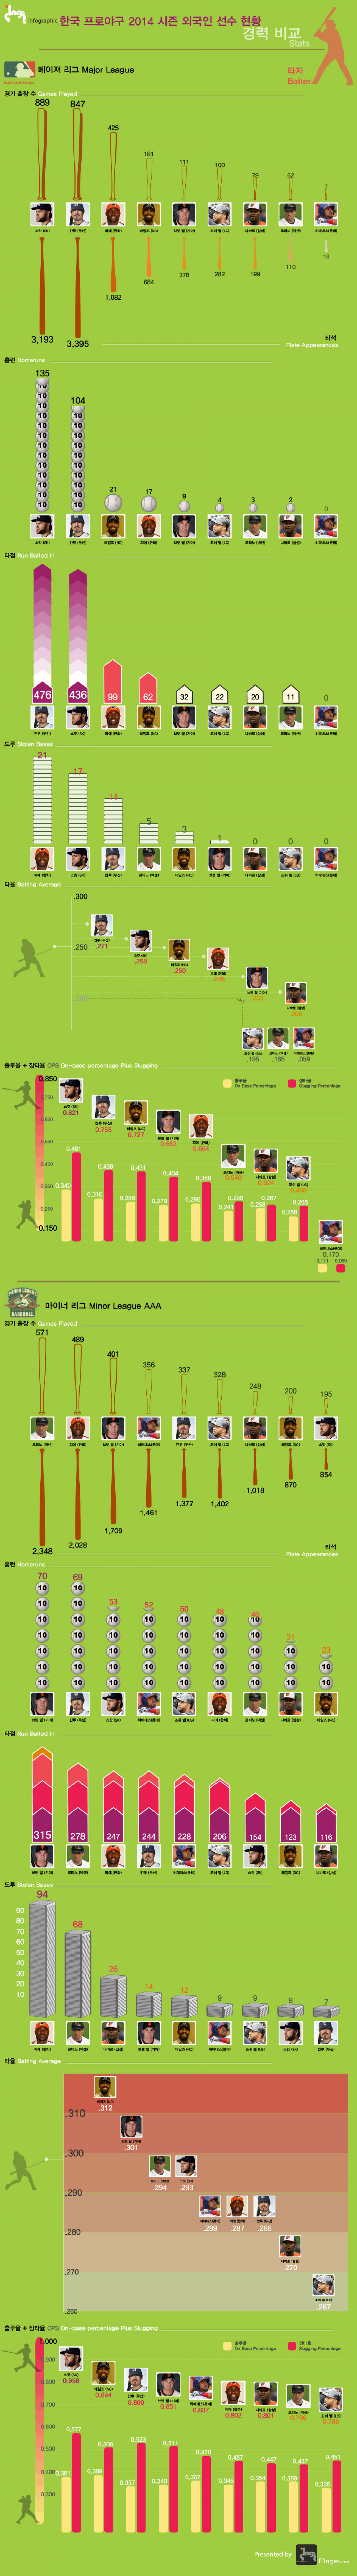 2014 KBO foreign player, Batters Infographic